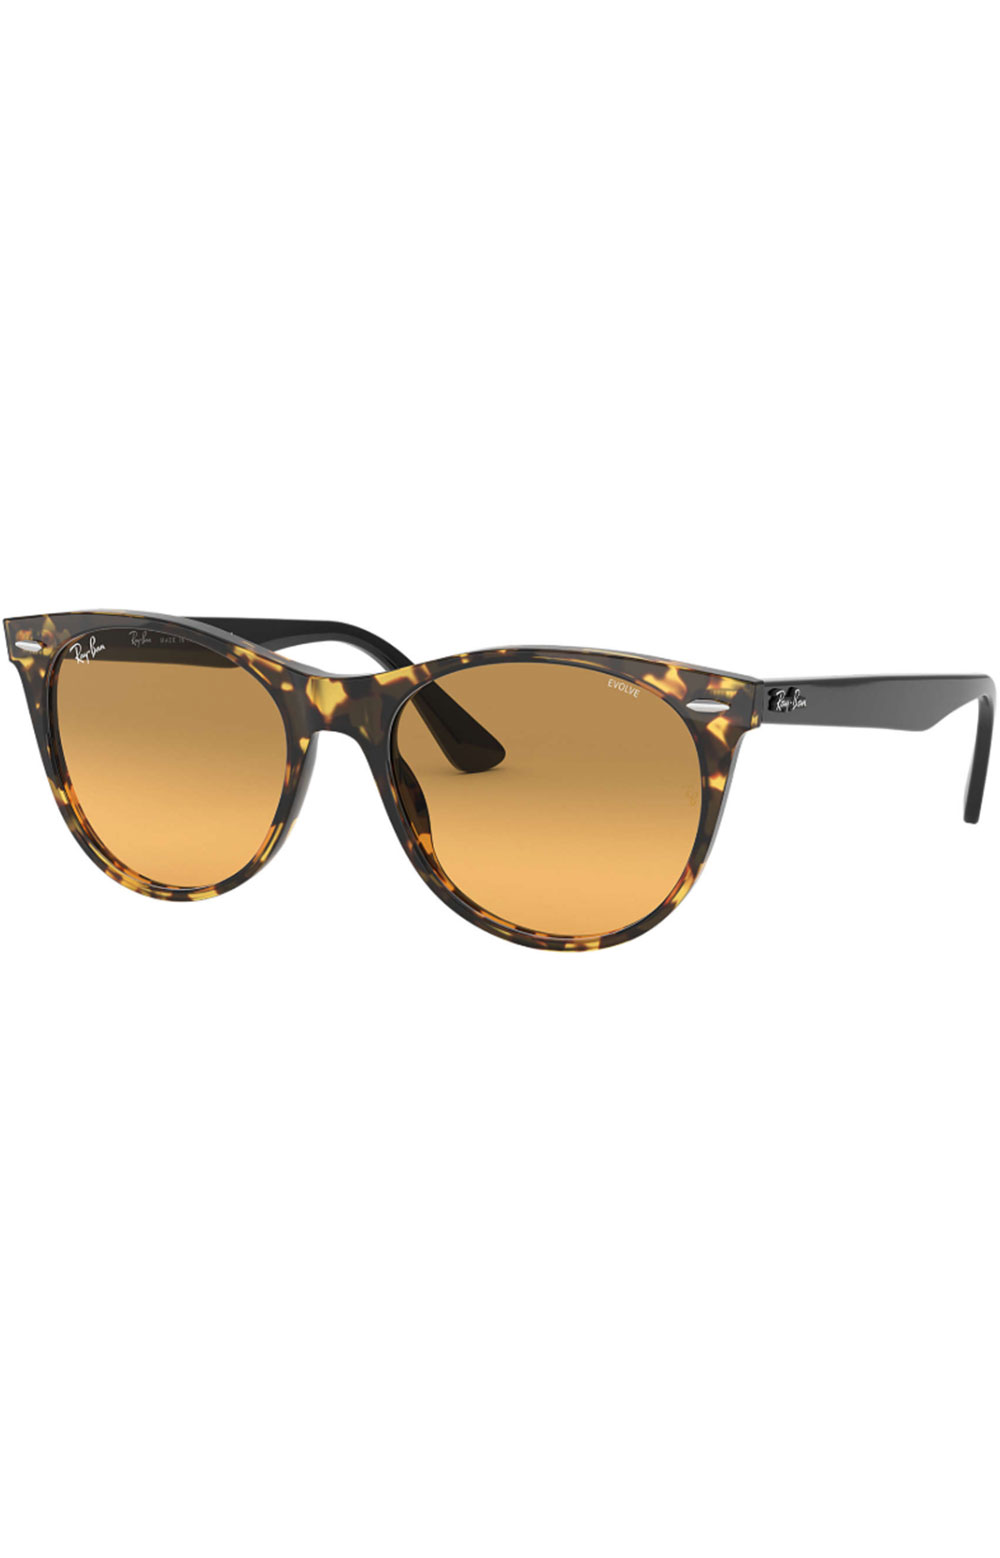 (1248AC52) Wayfarer II Sunglasses - Yellow Havana/Photo Orange